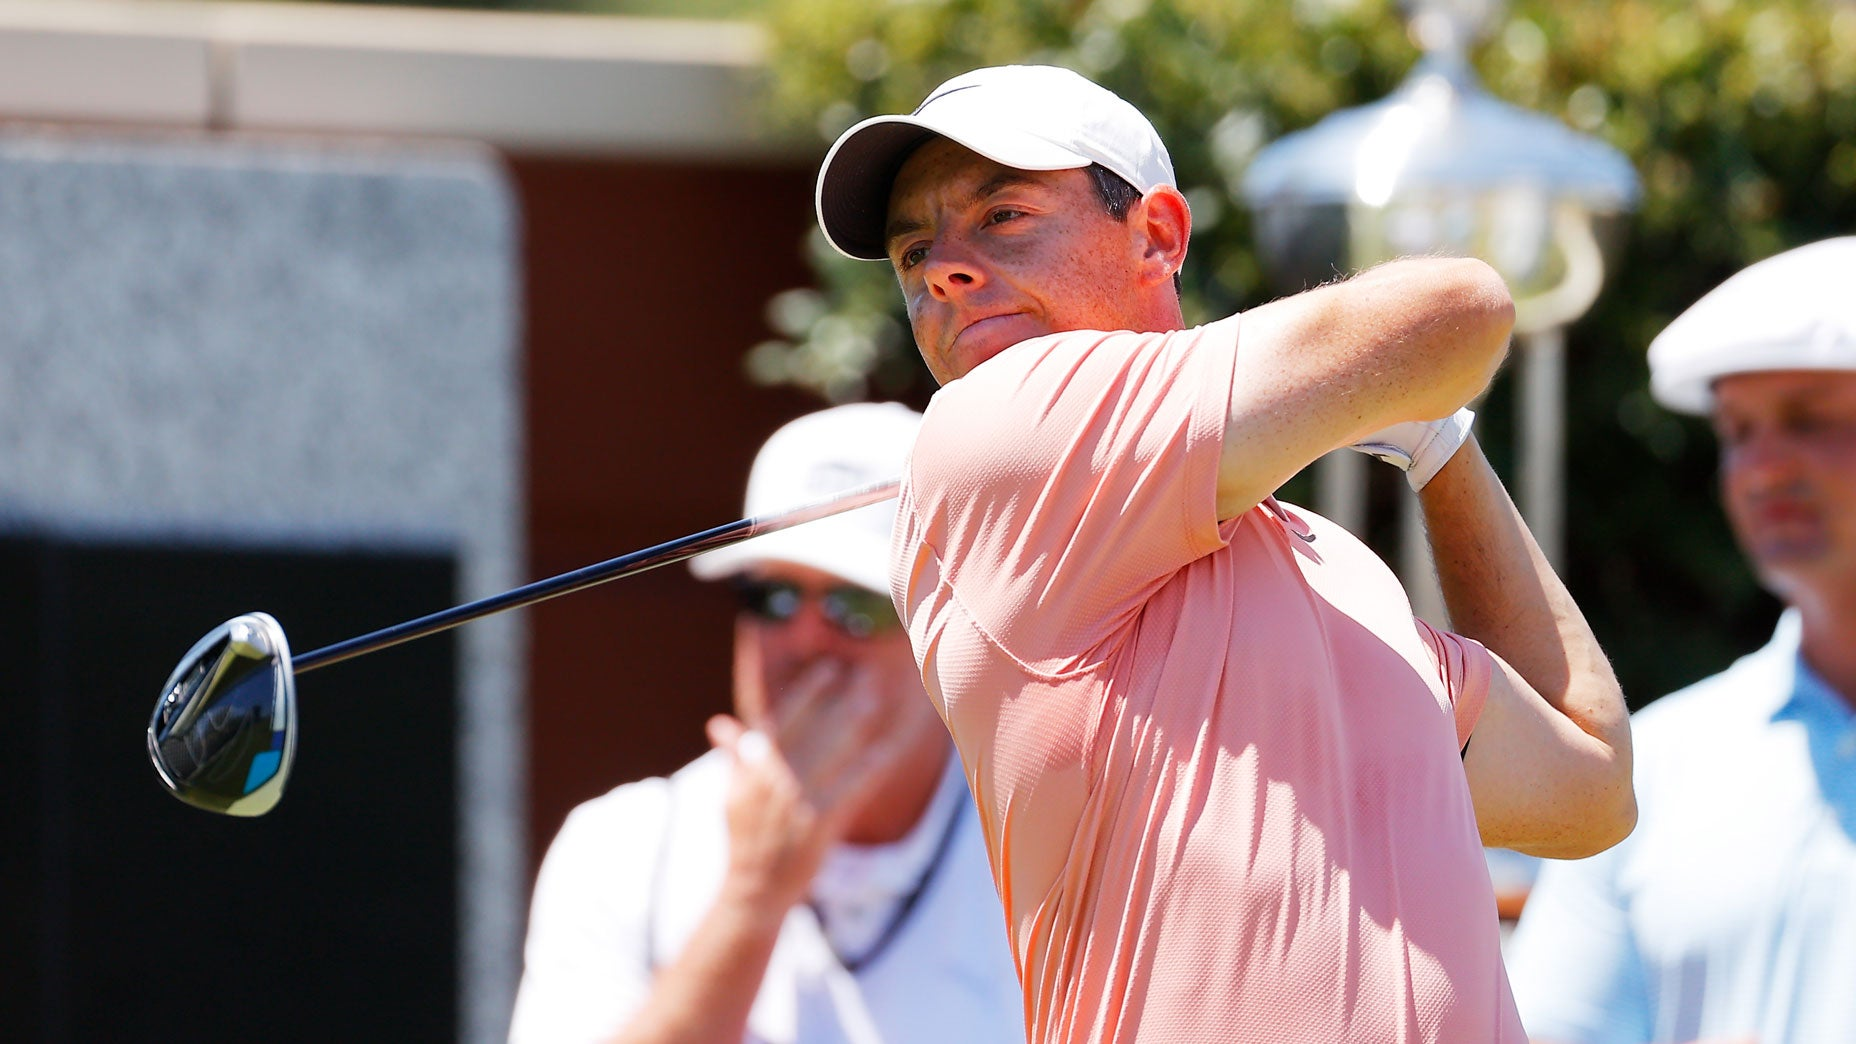 Nick Faldo: Rory McIlroy doesn't have a Plan B when things go wrong